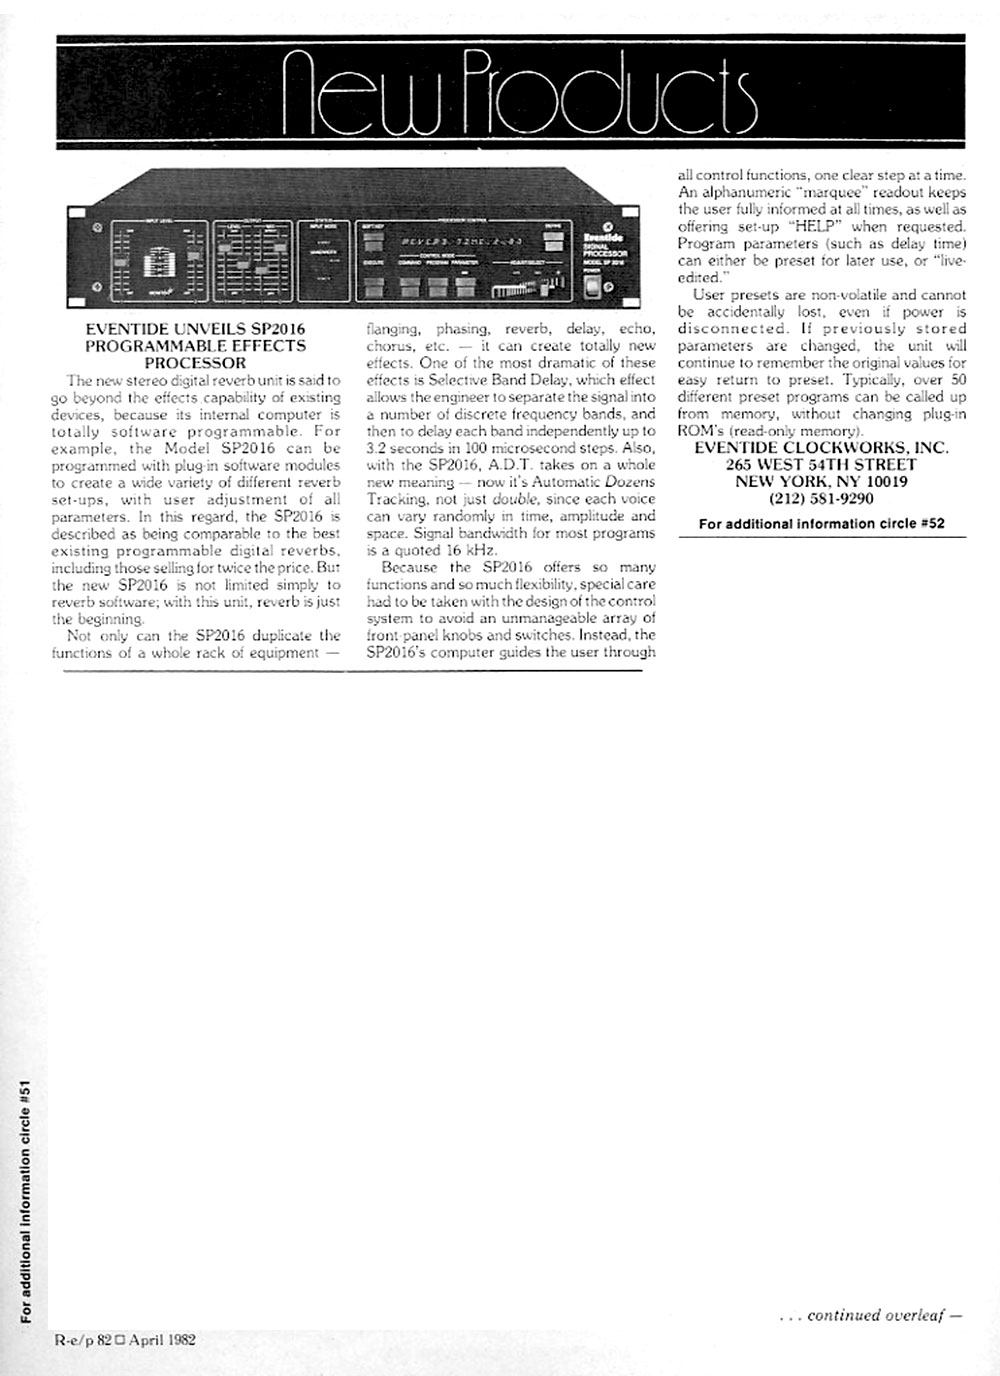 RE/P Magazine New Product Review, April 1982